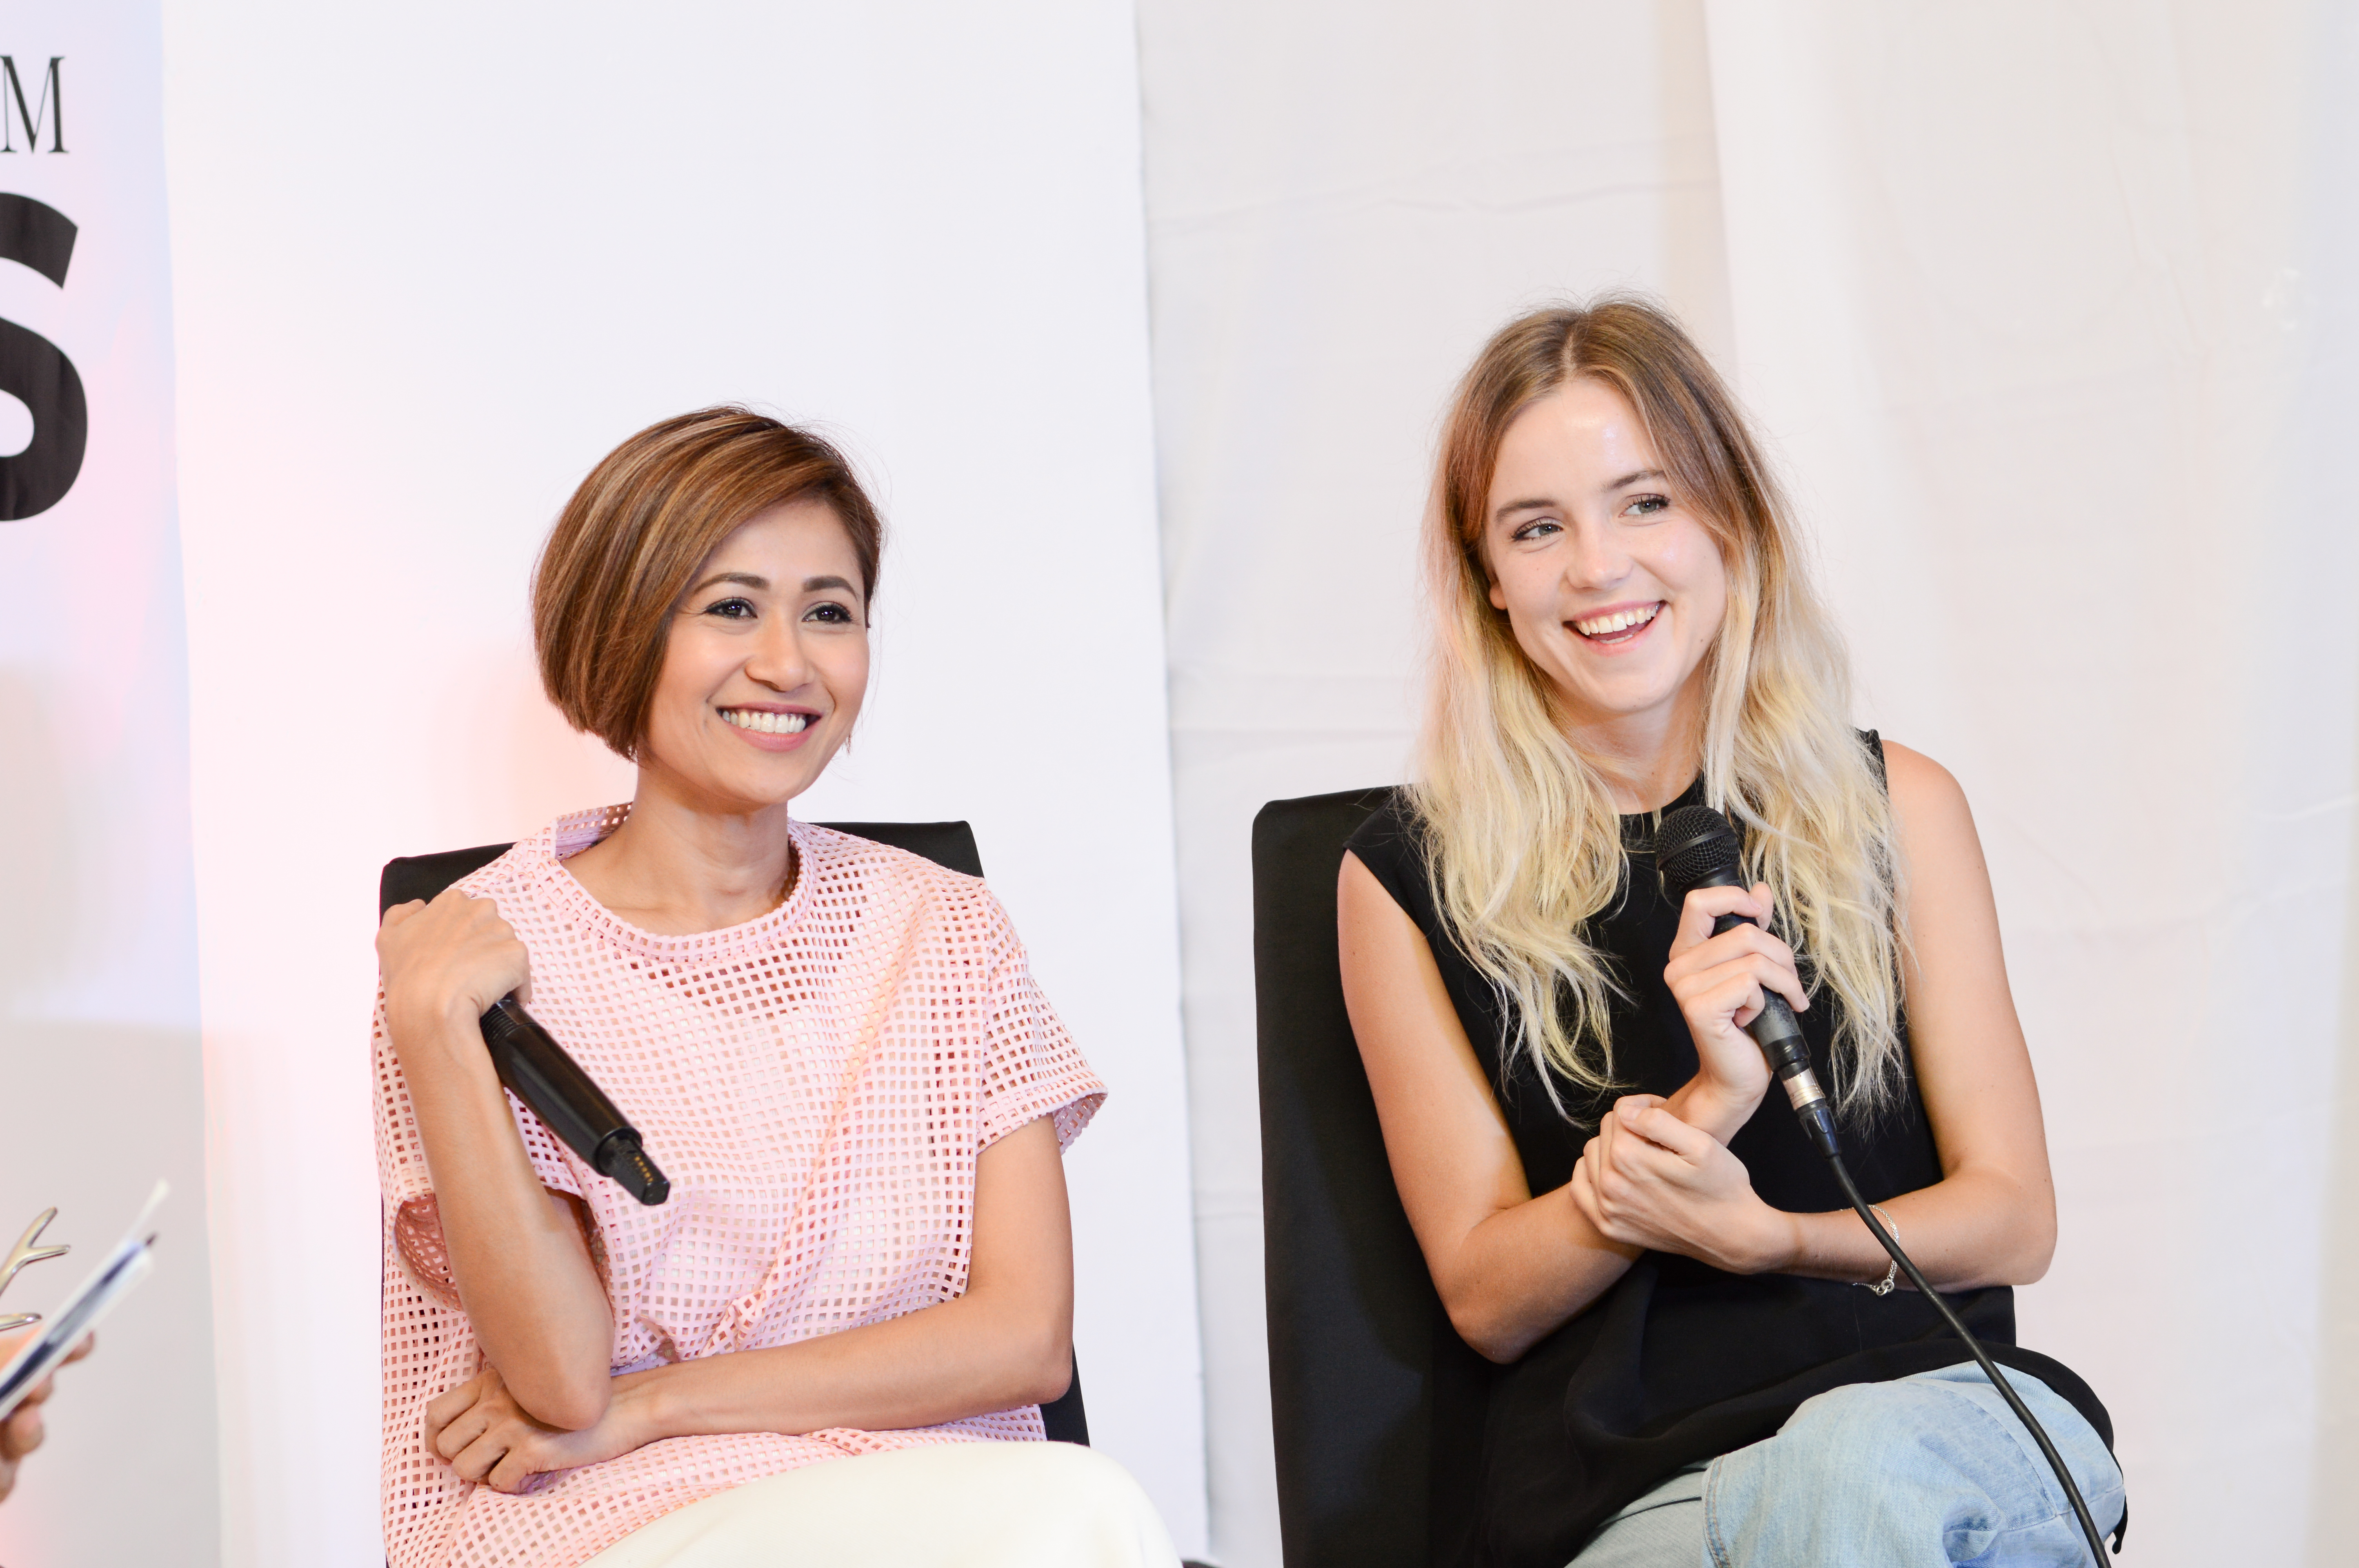 Pam Quiñones and Philippa Andrén discuss trends, Scandinavian style, and their careers in the fashion industry